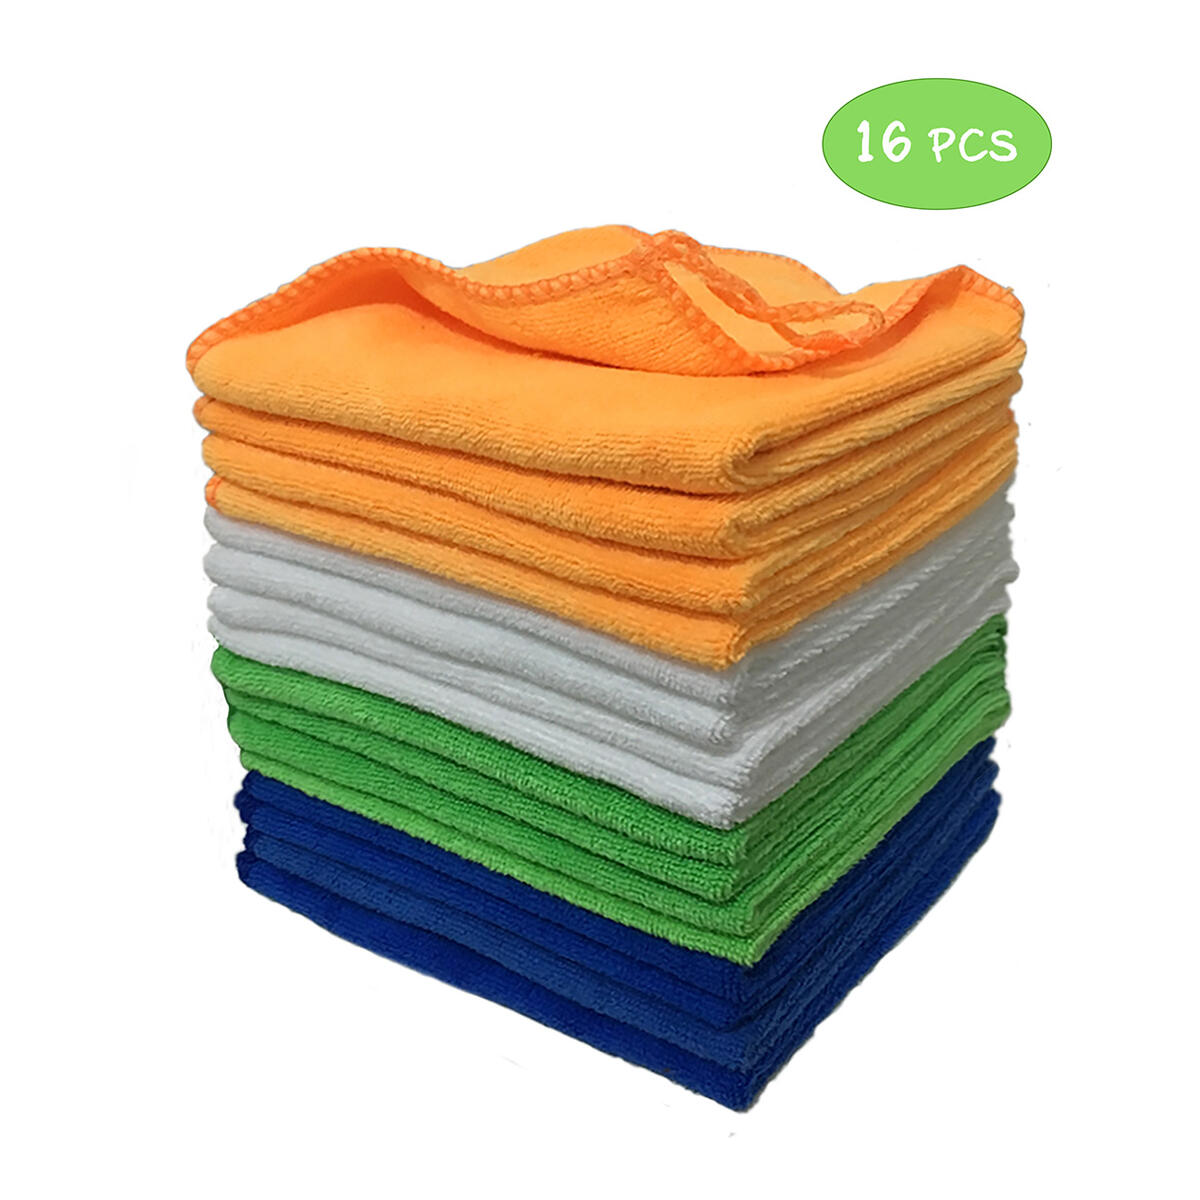 16 PCS Microfiber Cleaning Cloth 4 Colors 12 x 12 in Dish Cloths Soft Highly Absorbent Cleaning Towels Rags for House Kitchen Car Window